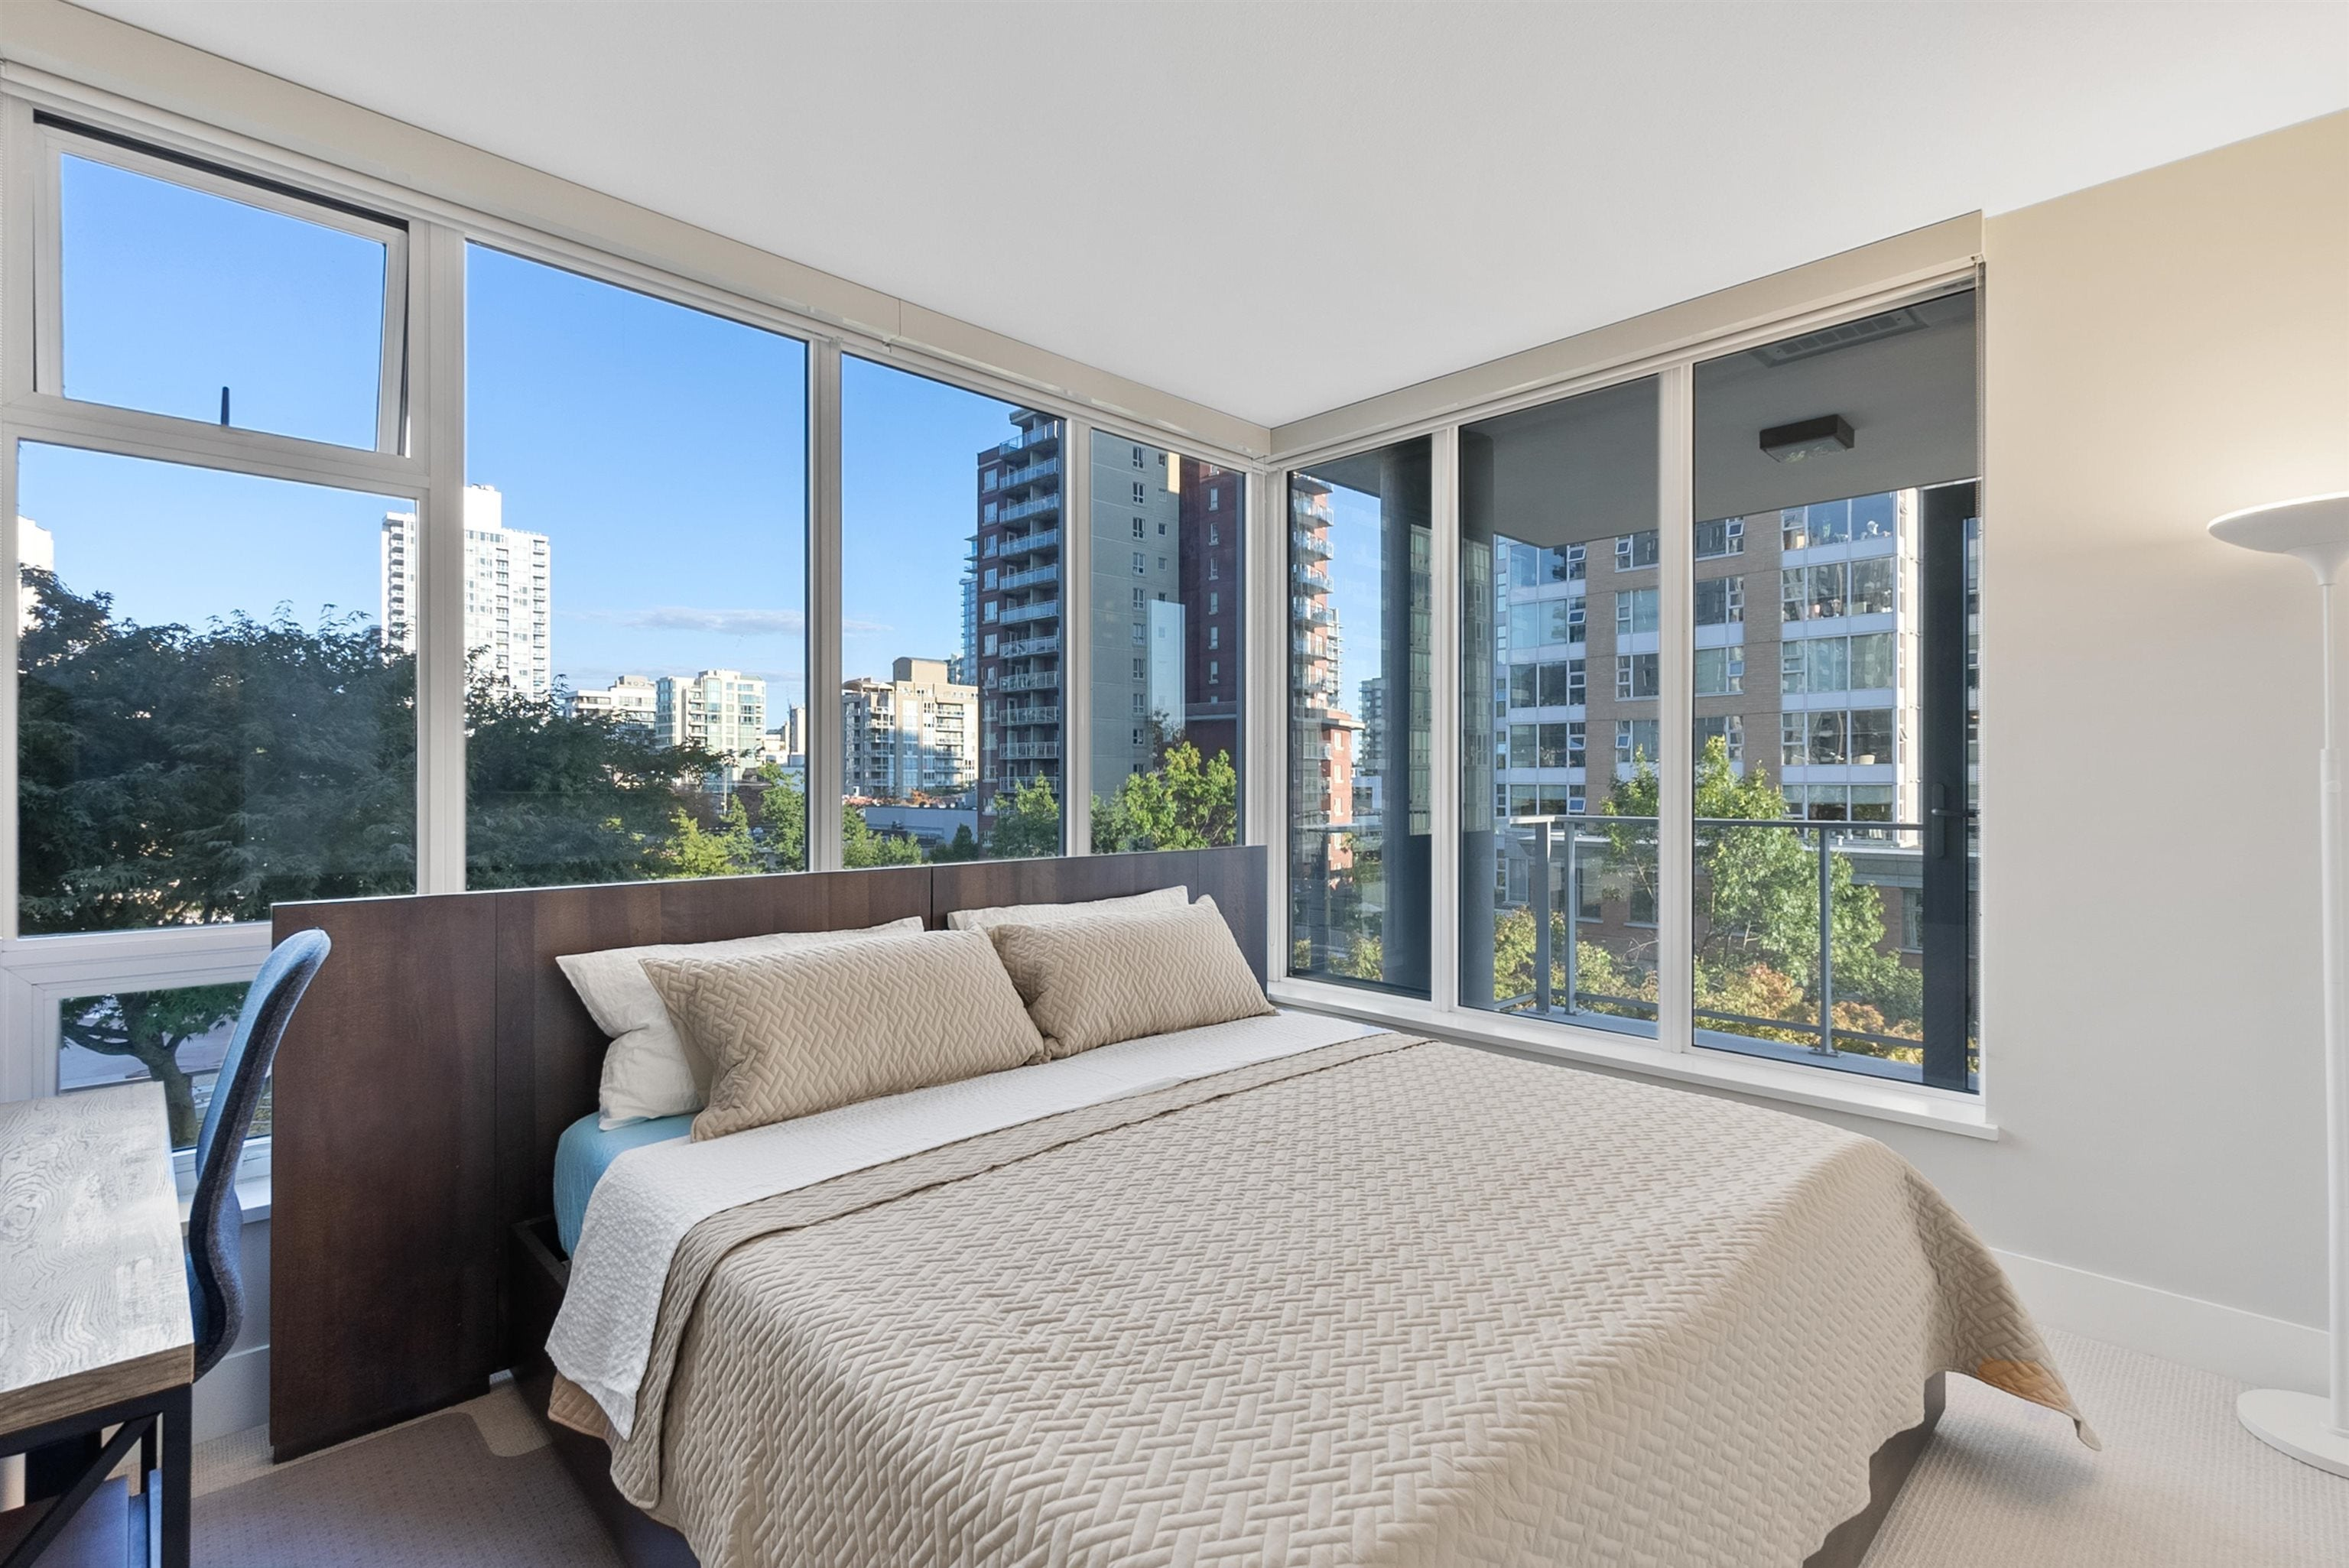 503 150 W 15TH STREET - Central Lonsdale Apartment/Condo for sale, 2 Bedrooms (R2624732) - #15